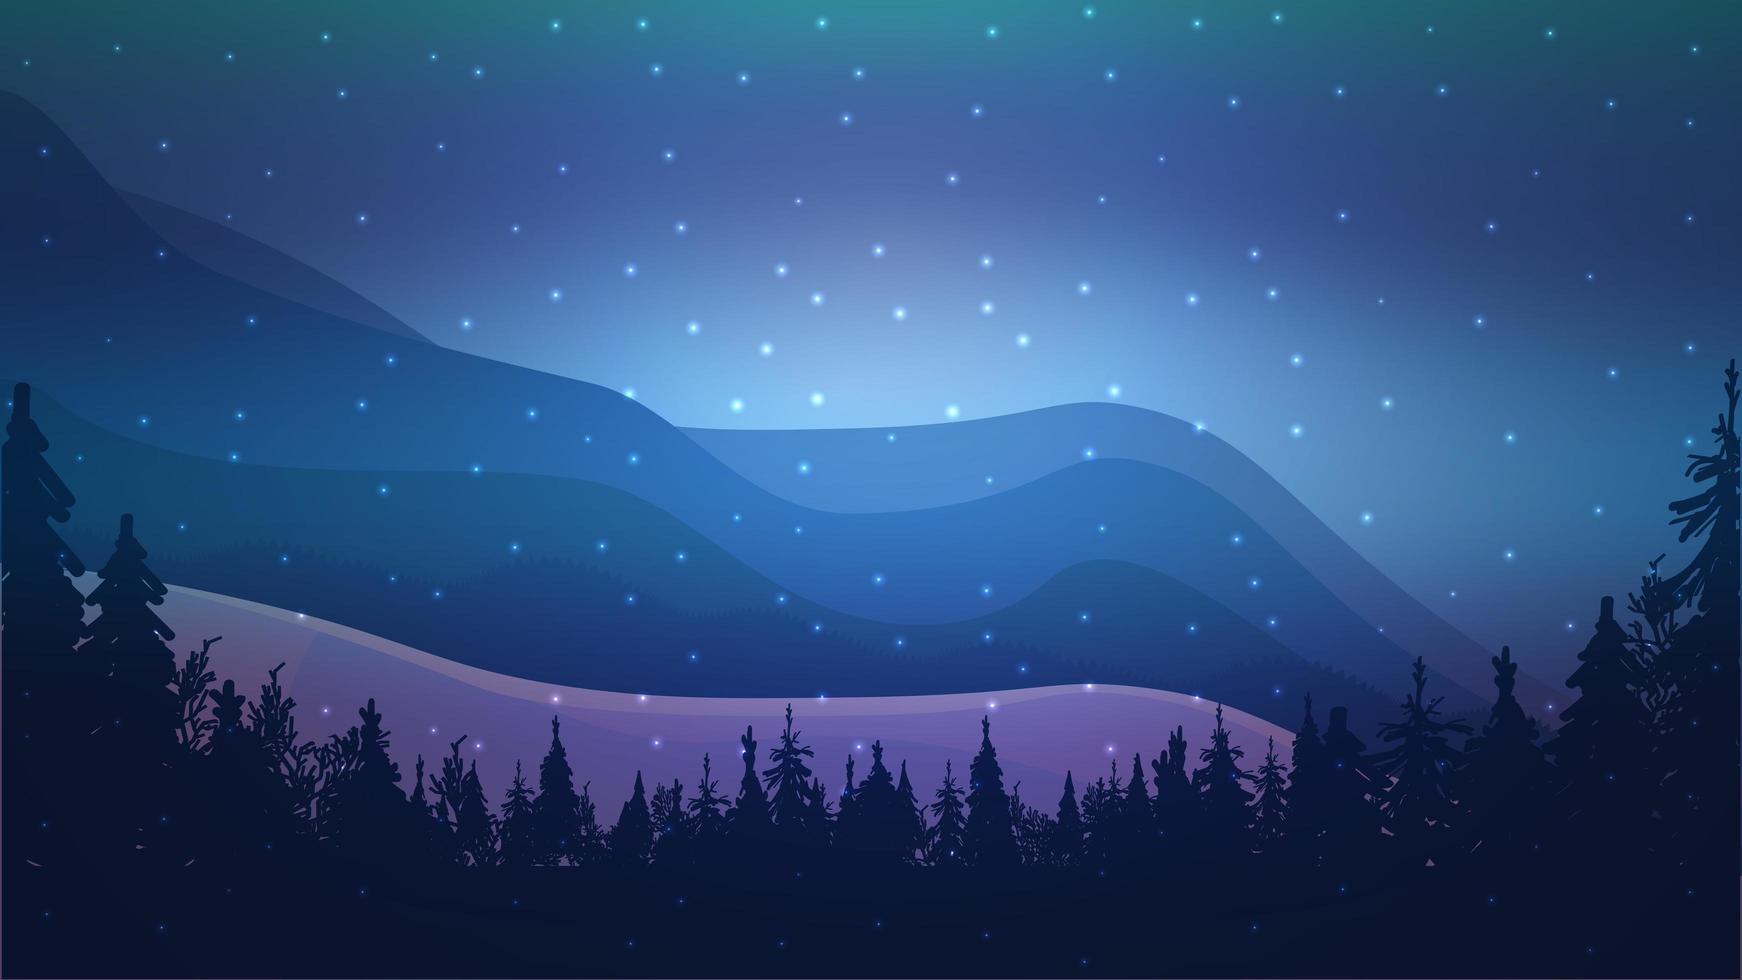 Night winter landscape with mountains vector